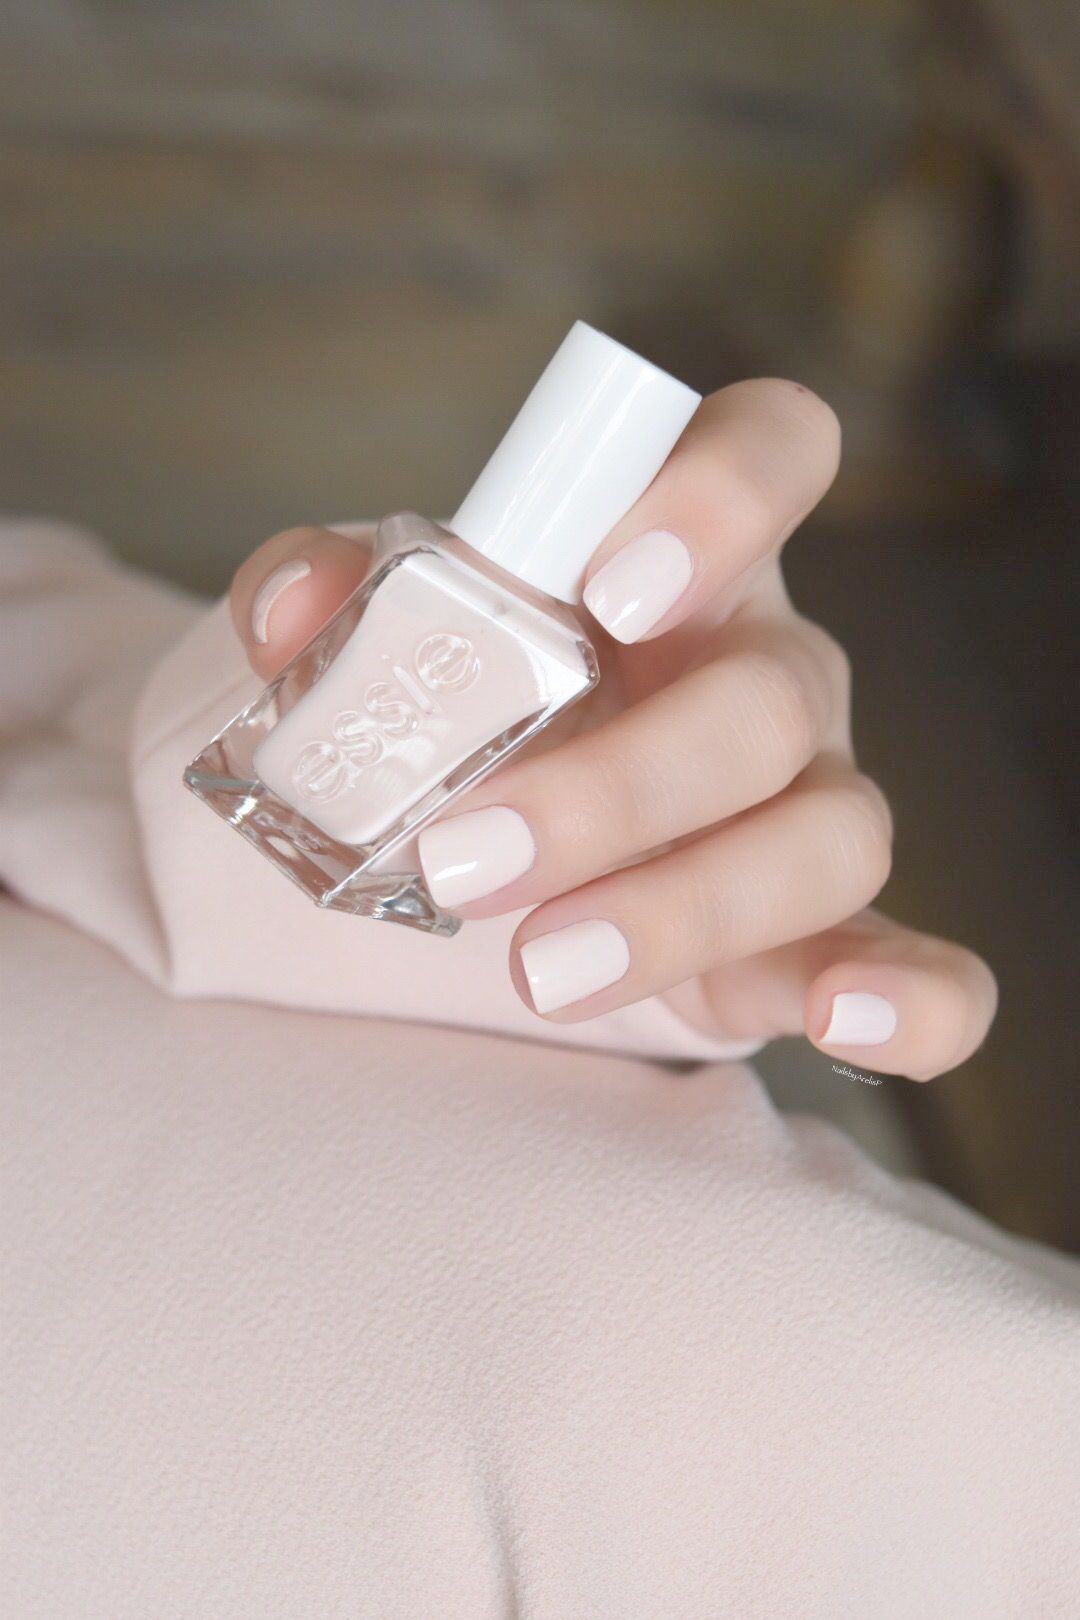 Kiss Nail Care Products Those Nail Care Jacksonville Fl Neutral Nail Colors That Go With Everything Gel Manicure Colors Gel Manicure Manicure Colors